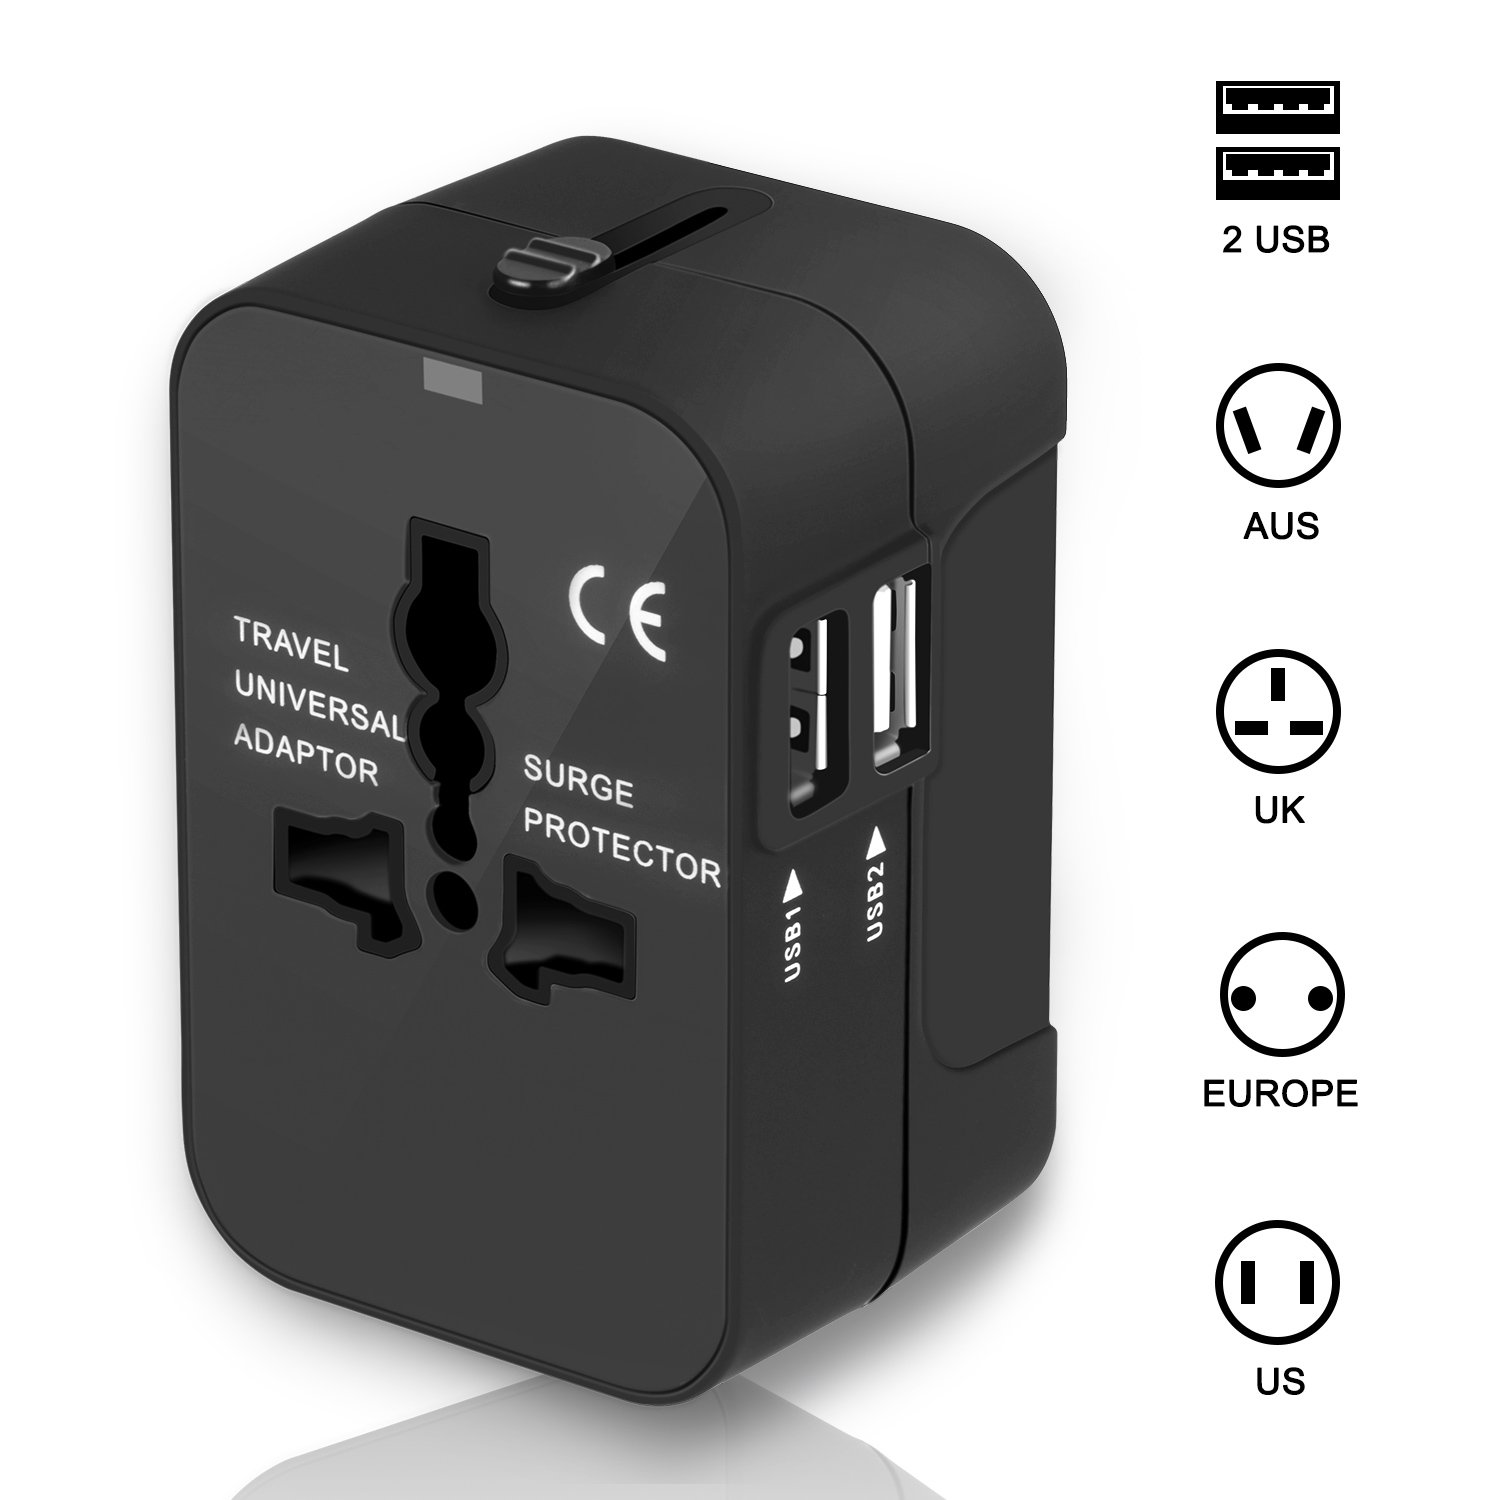 Travel Adapter, International Power Plug Converter UK Plug Adapter Kits with Dual USB Ports Worldwide All in One AC Wall Outlet Charger Adapters for UK, US, AU, Europe & Asia(Black) by Cell-Tronics